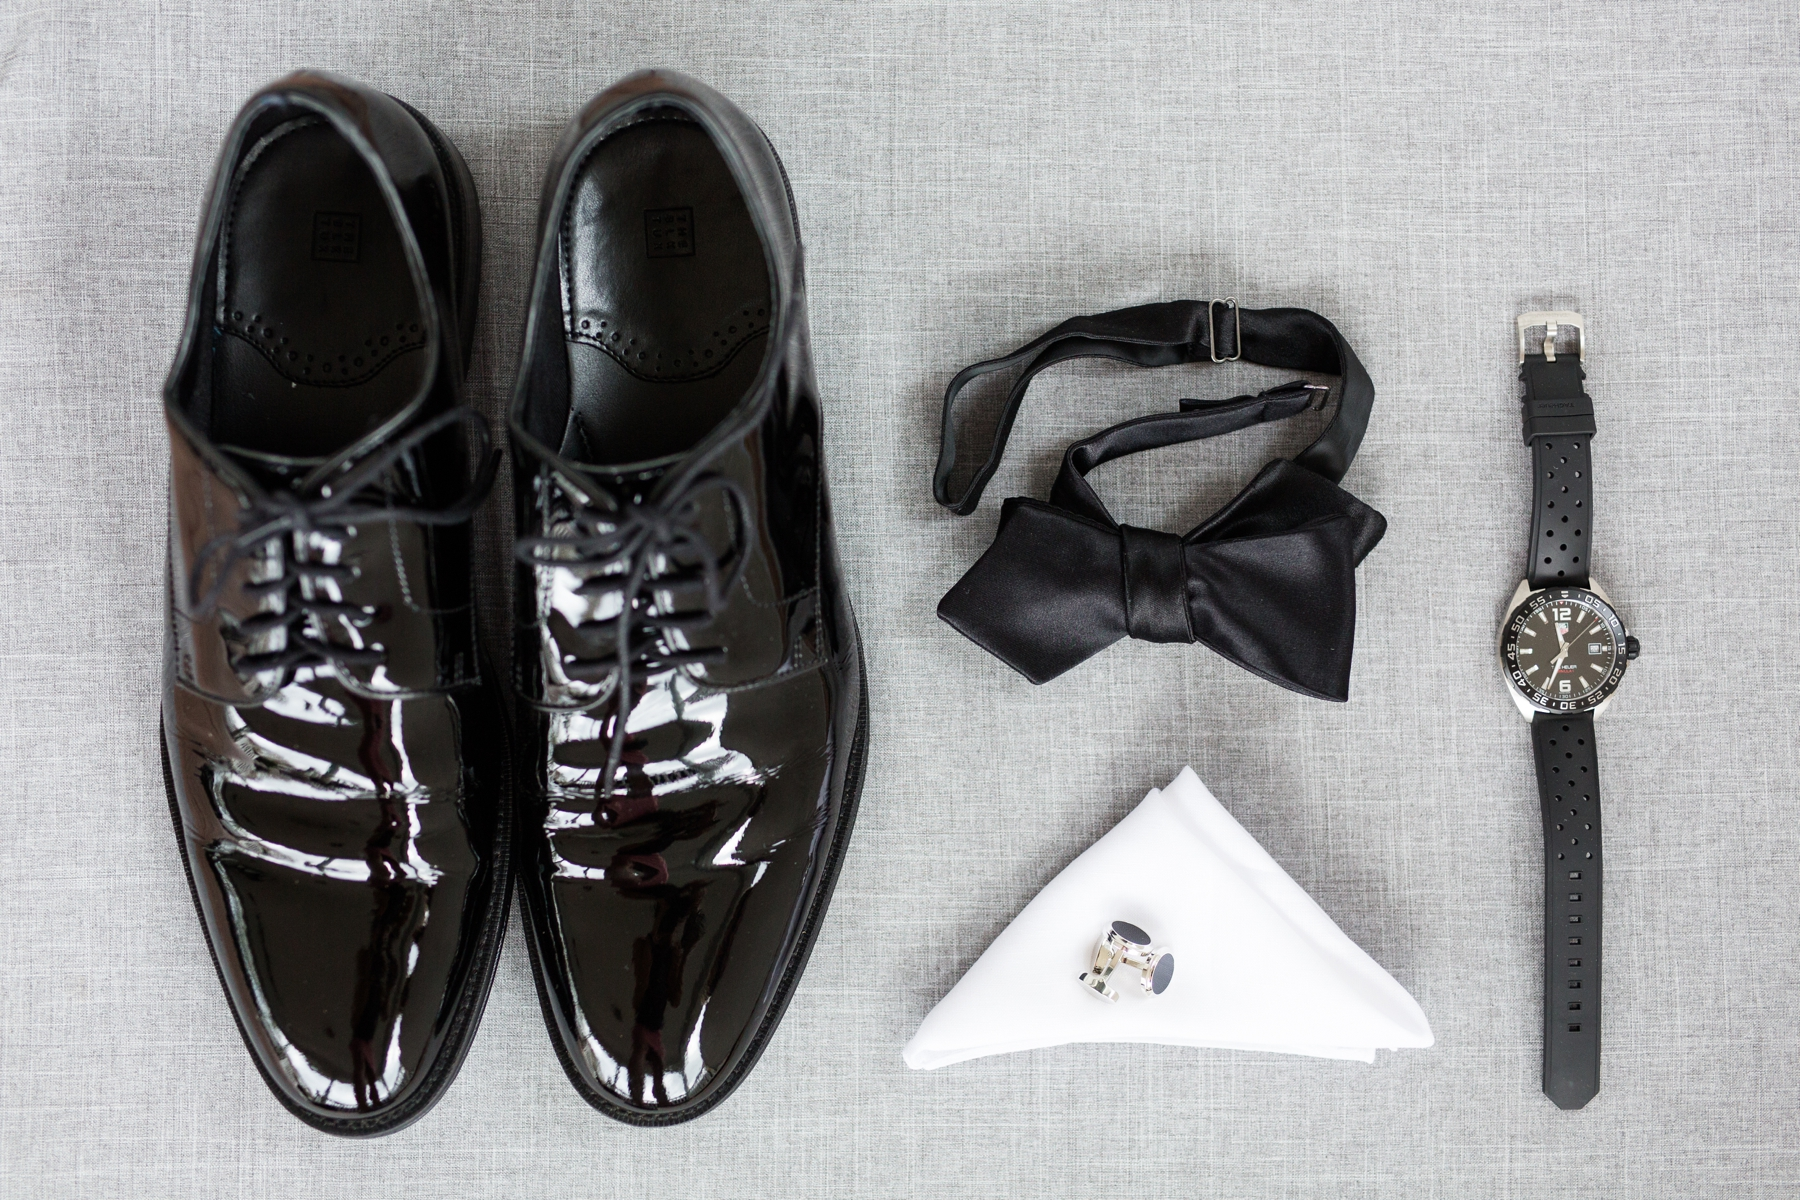 Black shoes, Bow, Cufflinks and Watch